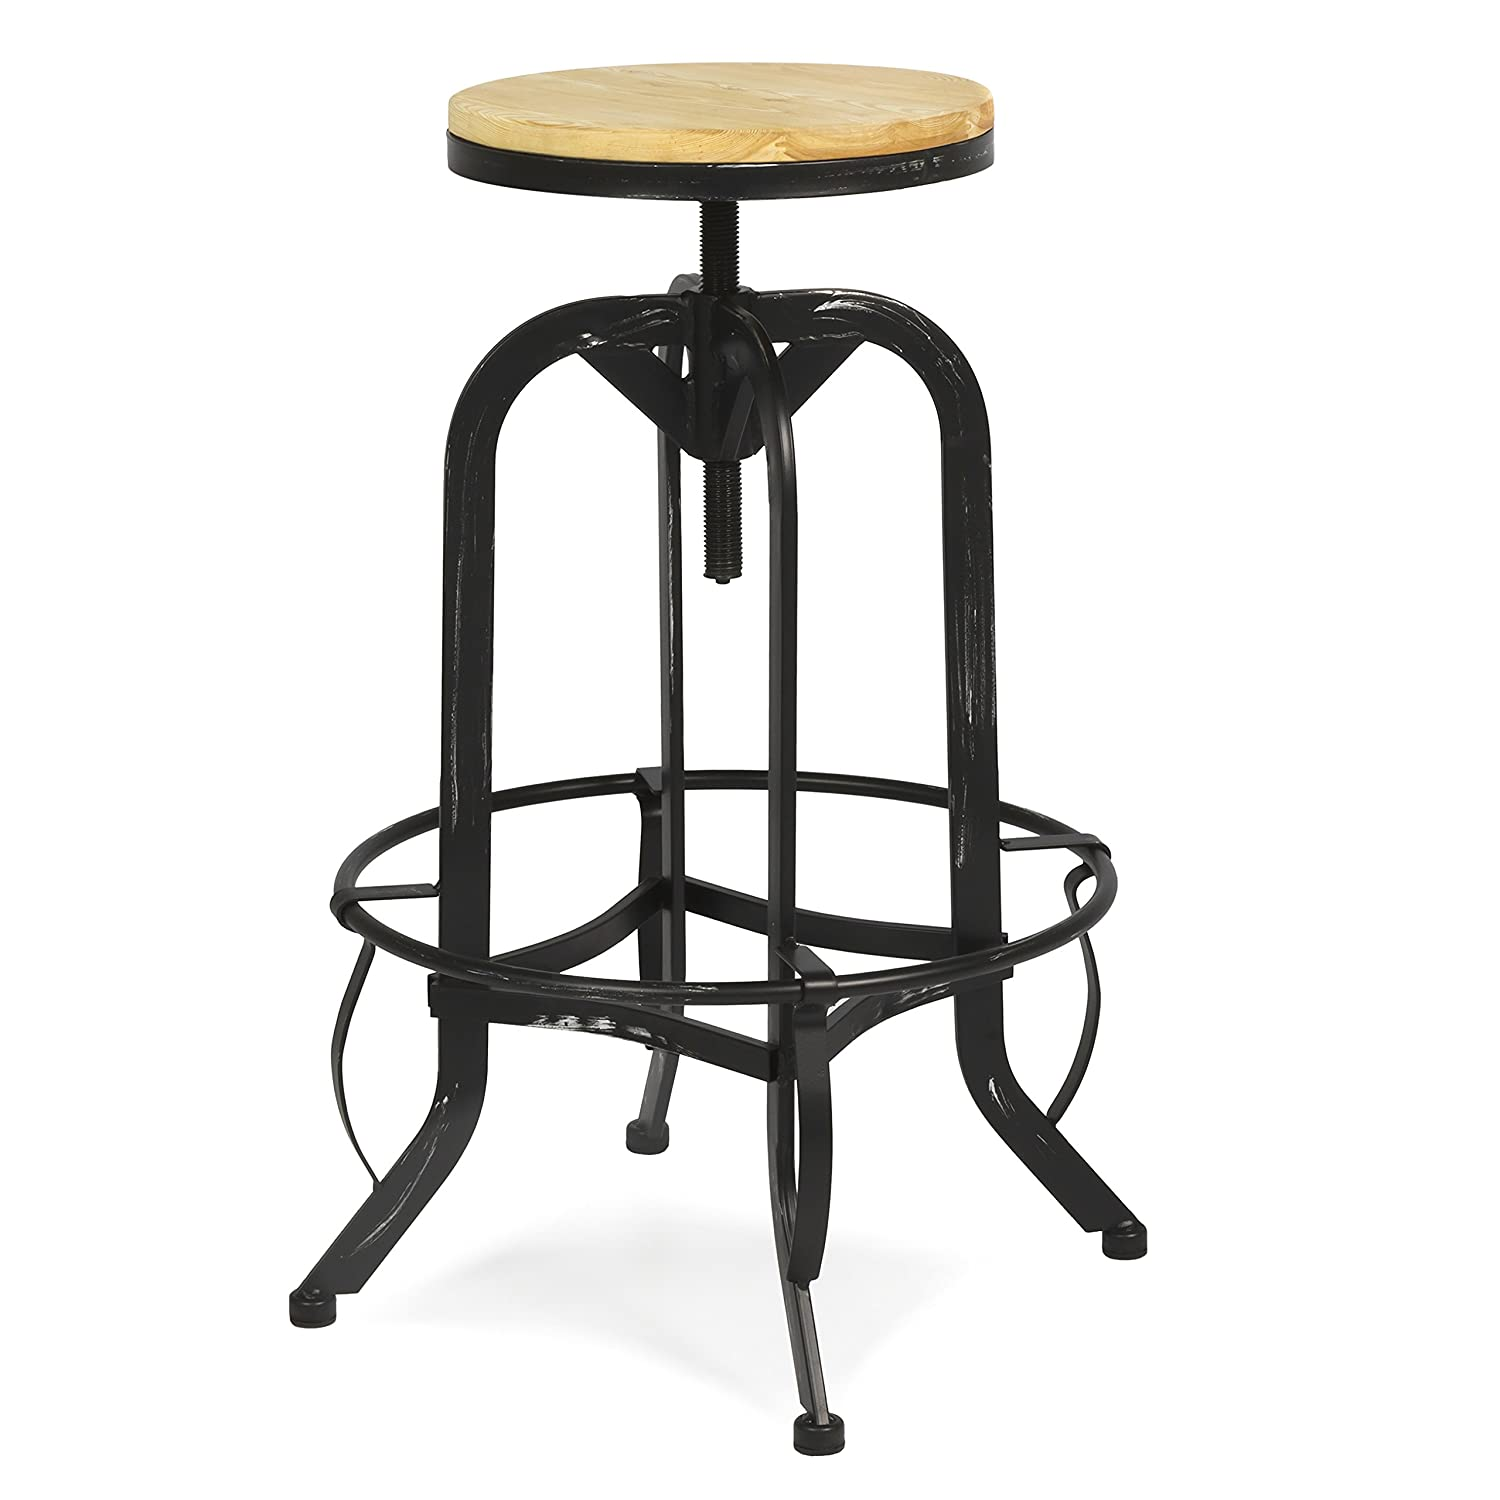 Amazon.com: Best Choice Products Vintage Bar Stool Industrial ...